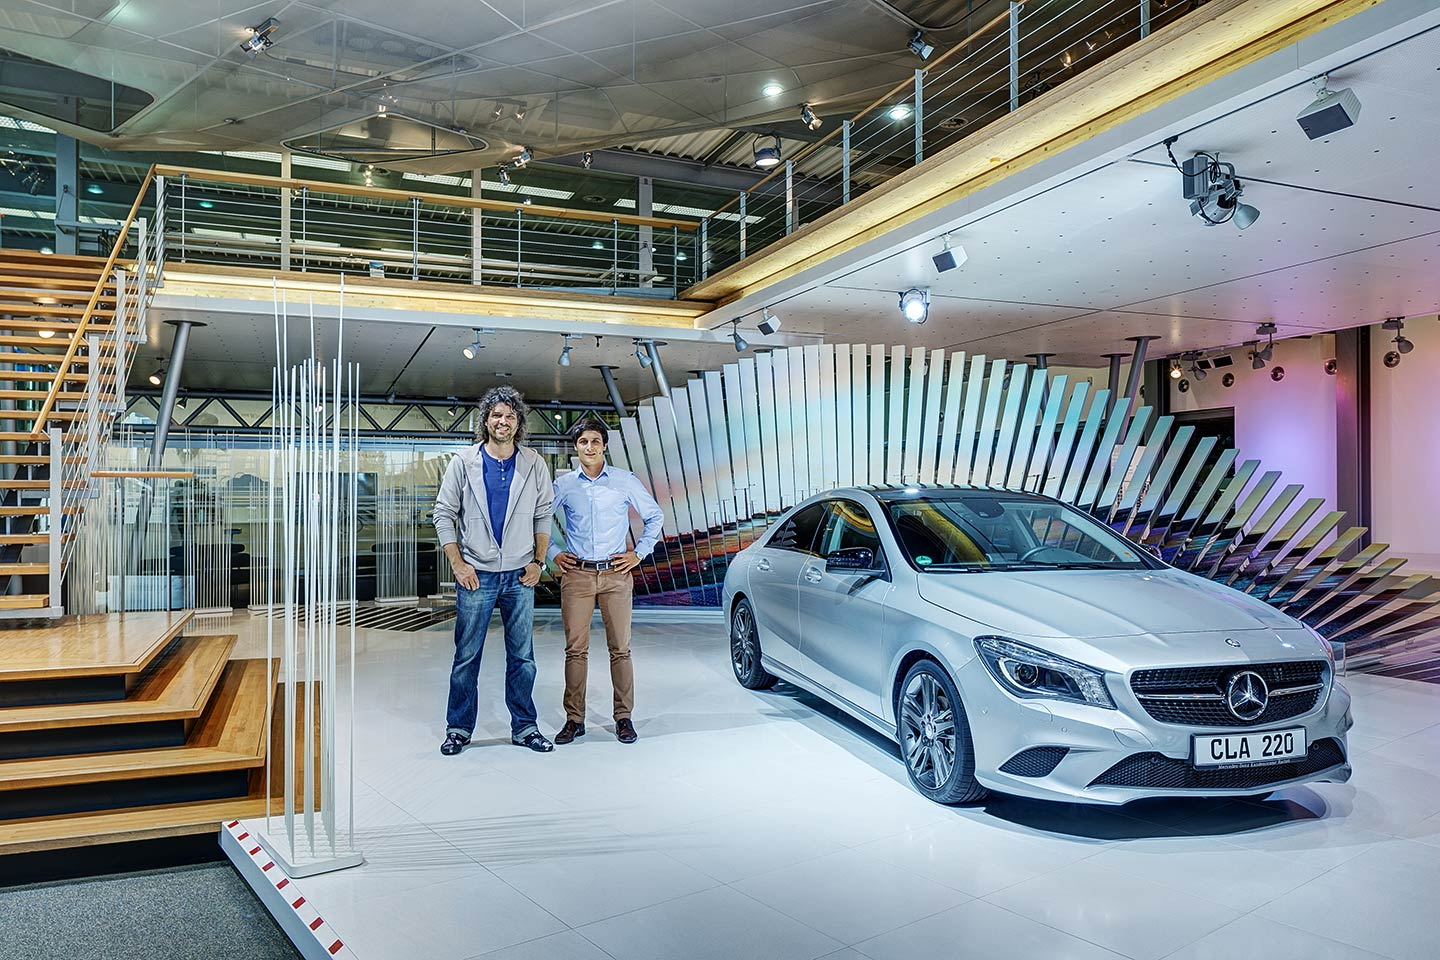 mercedes-benz kundencenter rastatt - showroom 360 referenz für